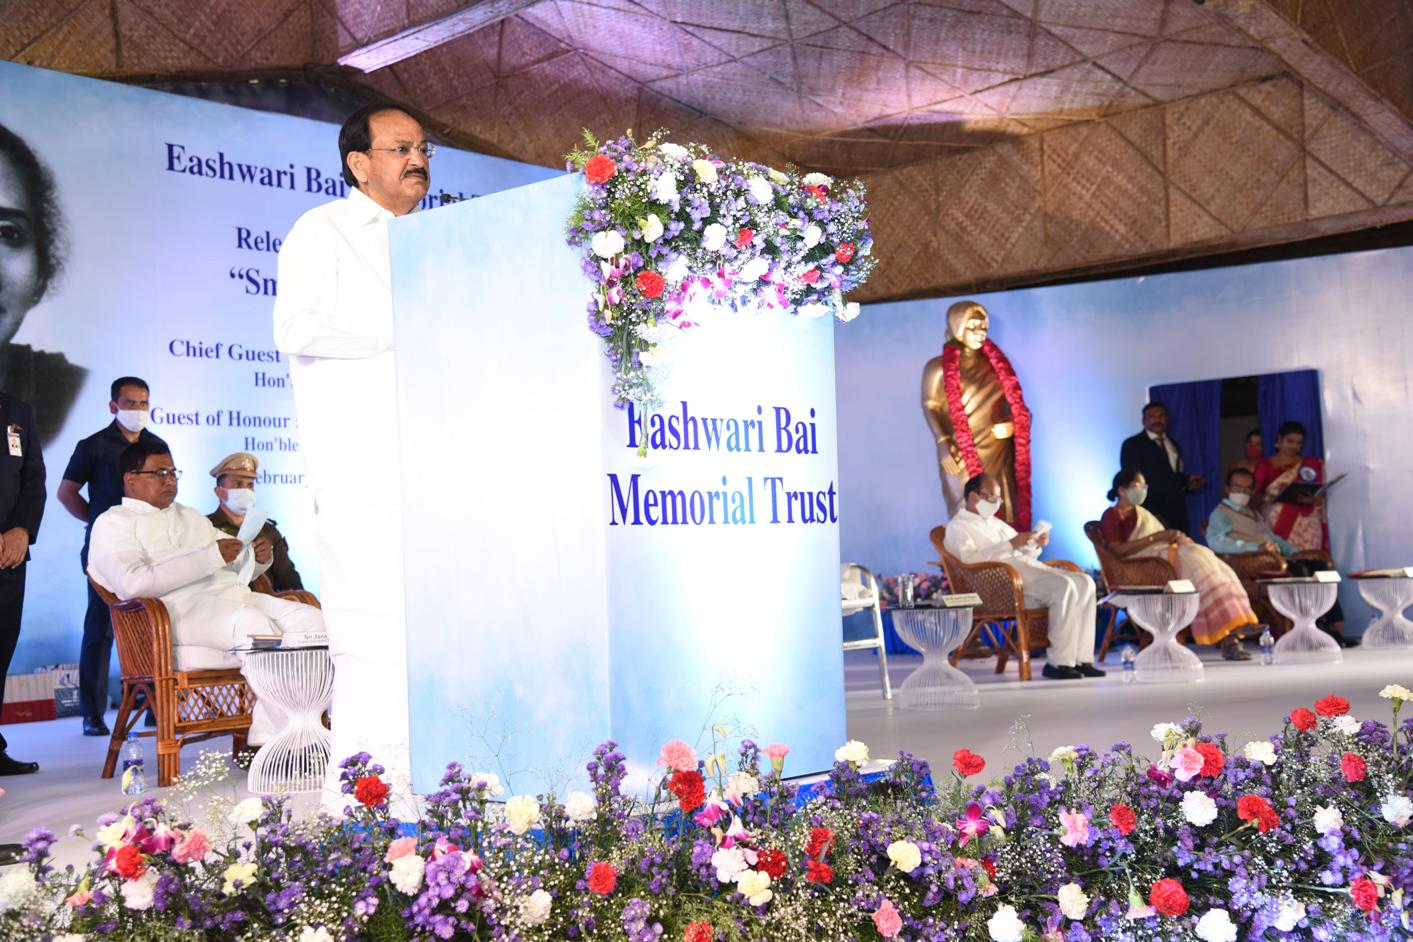 The Vice President, Shri M. Venkaiah Naidu addressing the gathering after releasing the Postal Stamp in the memory of Smt. J. Eashwari Bai in Hyderabad on 23 February, 2021.